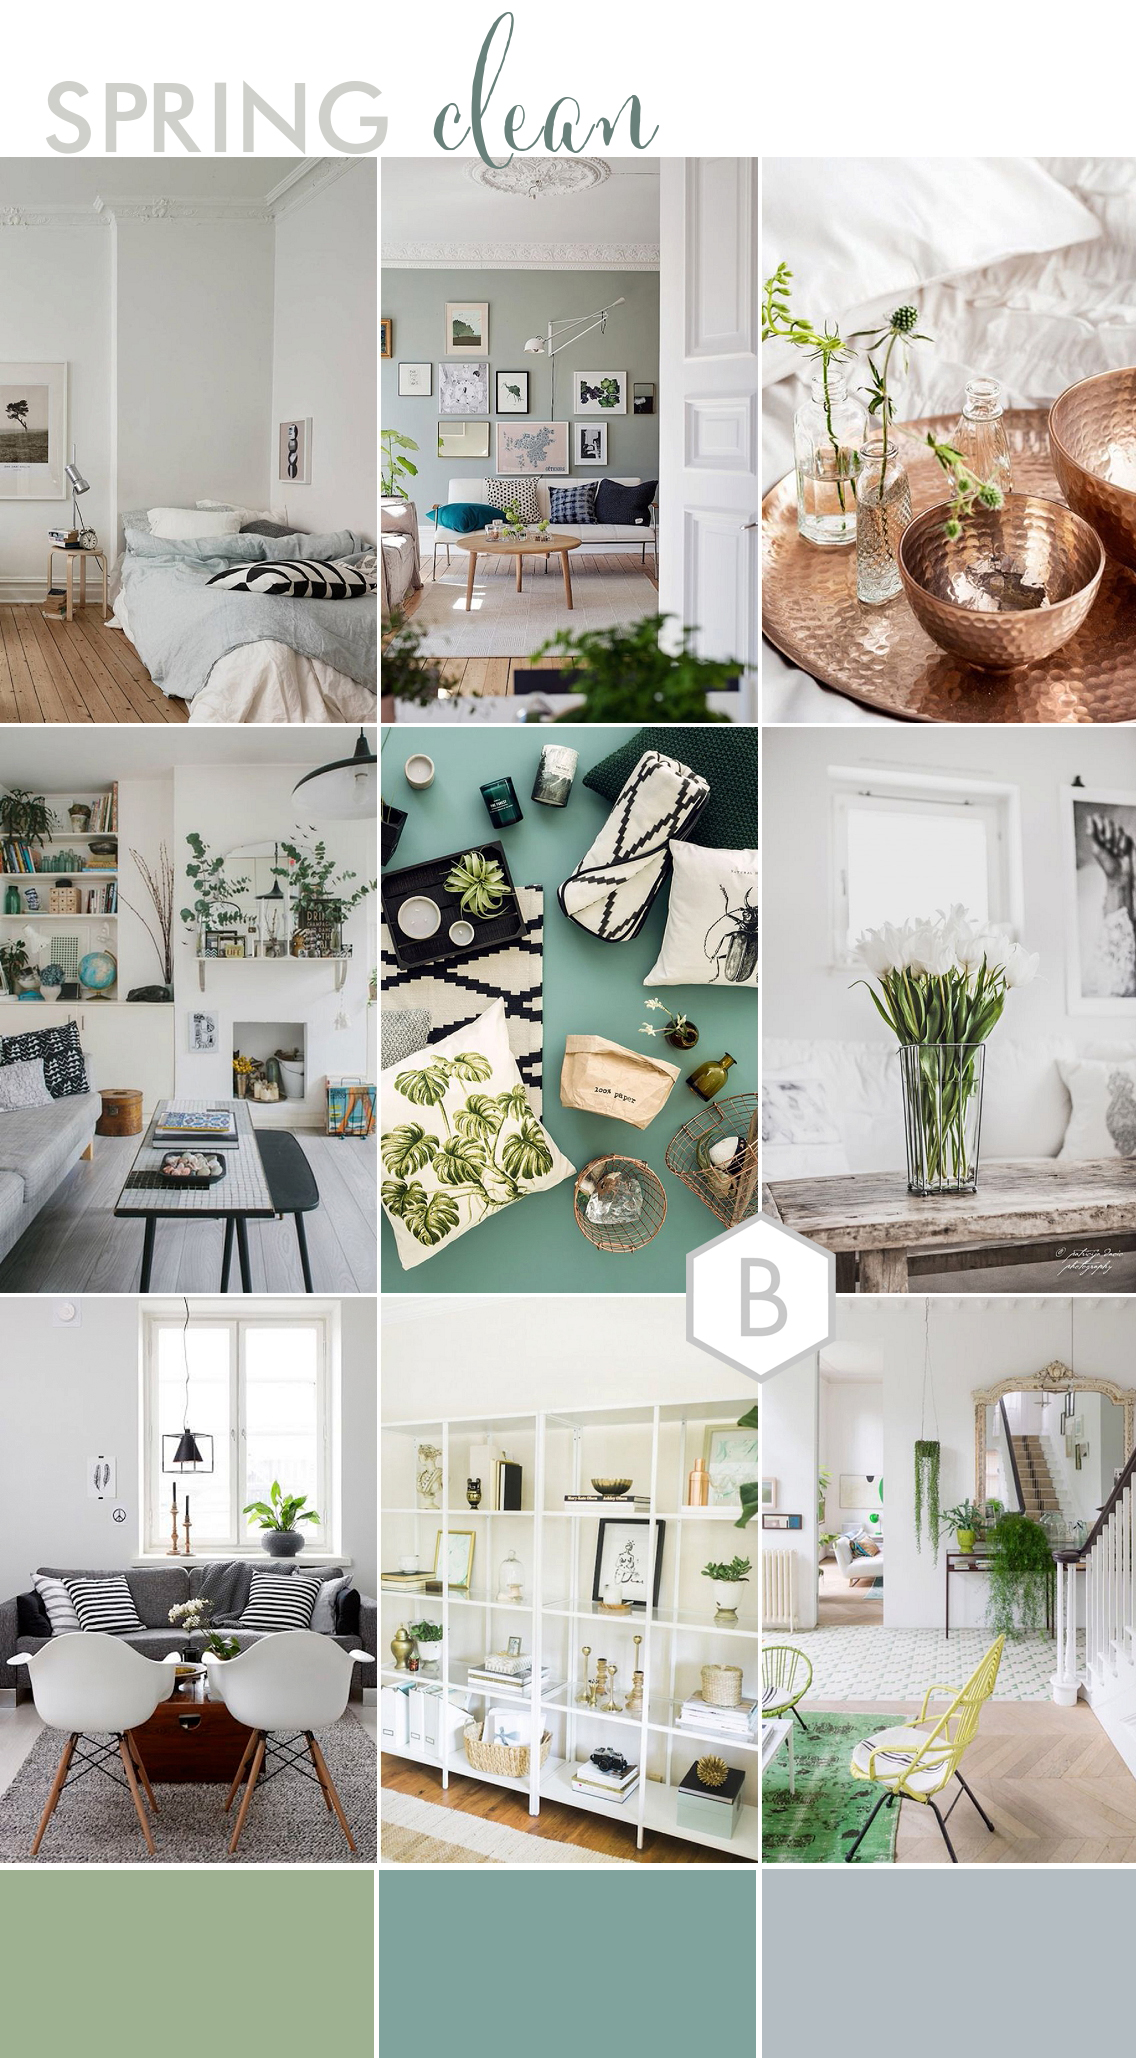 bloved-interiors-blog-spring-green-home-decor-inspiration